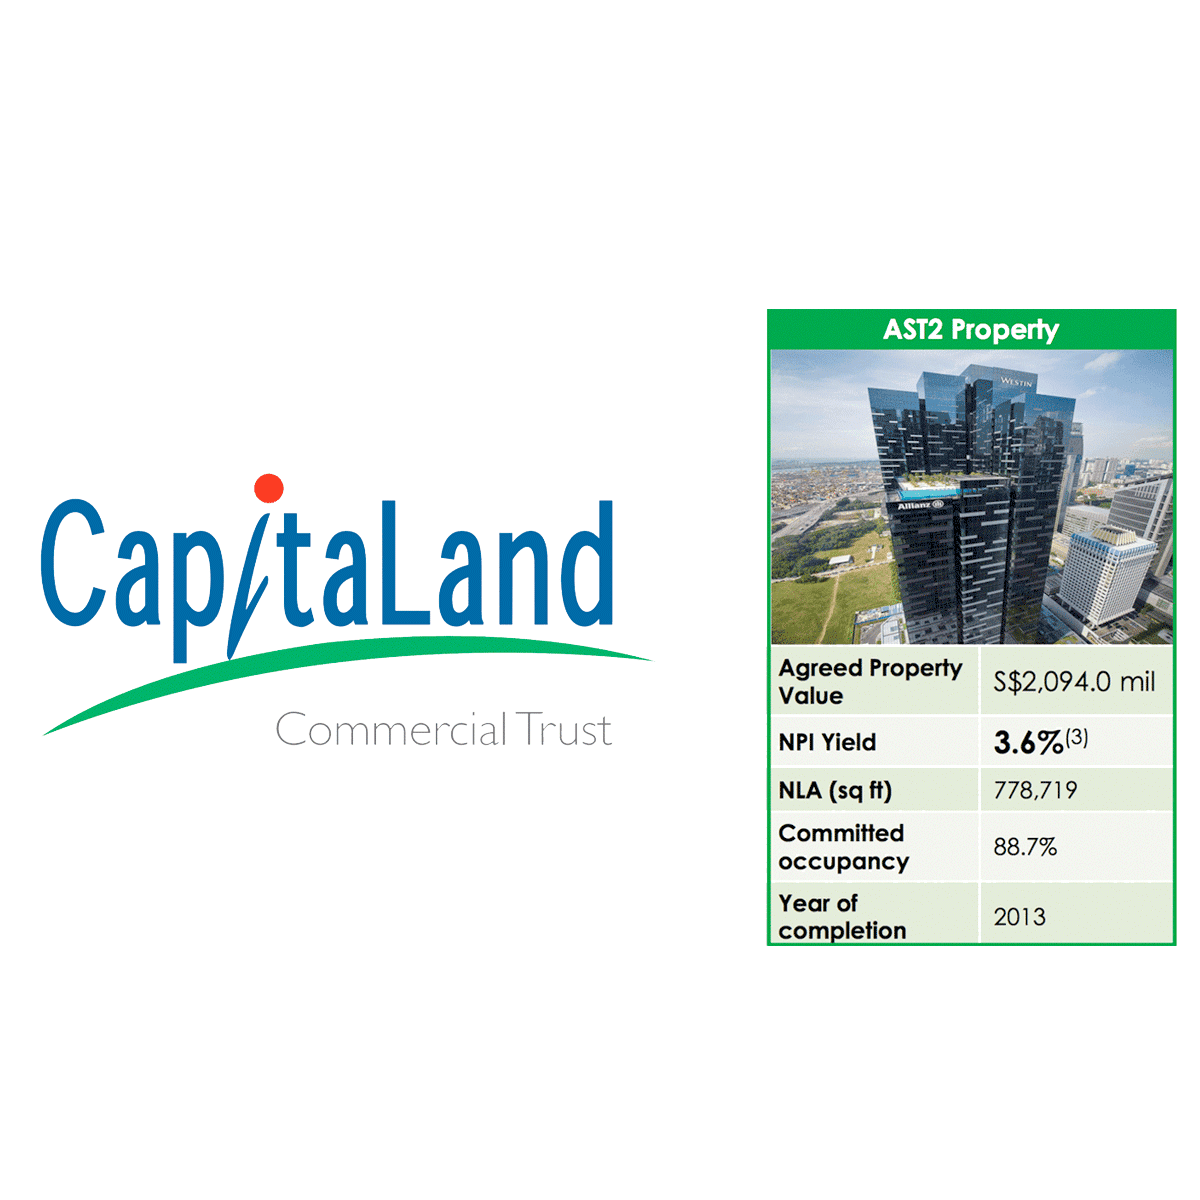 CapitaLand Commercial Trust (CCT SP) - Maybank Kim Eng 2017-09-22: Buying A Quality Asset With Occupancy Upside